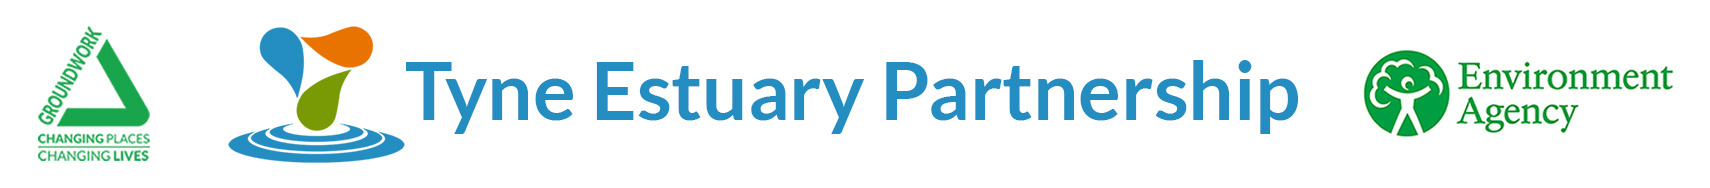 Tyne Estuary Partnership logo